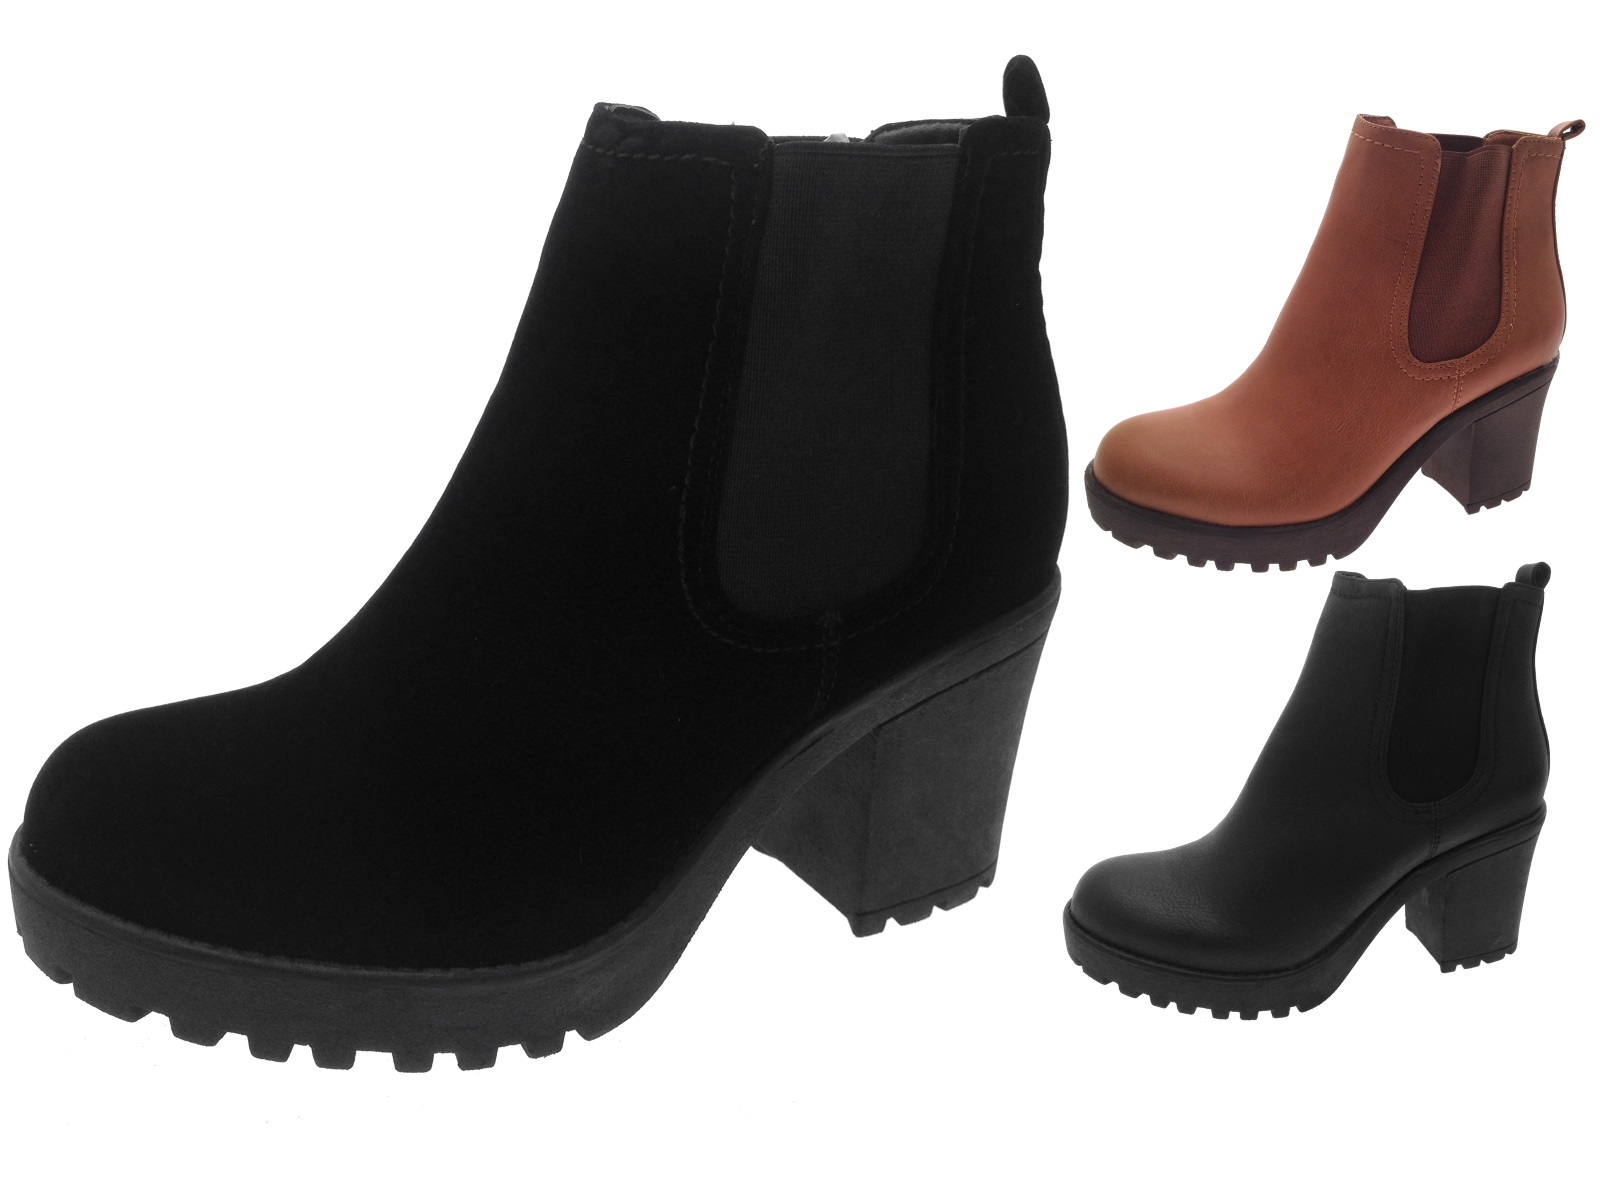 Shop our selection of chunky boots at arifvisitor.ga | Free delivery & returns | Browse block heel boots & chunky ankle boots online. In order to give you a better service Zalando uses cookies. By continuing to browse the site you are agreeing to our use of cookies. × I agree. HELP & CONTACT. Free delivery & returns.